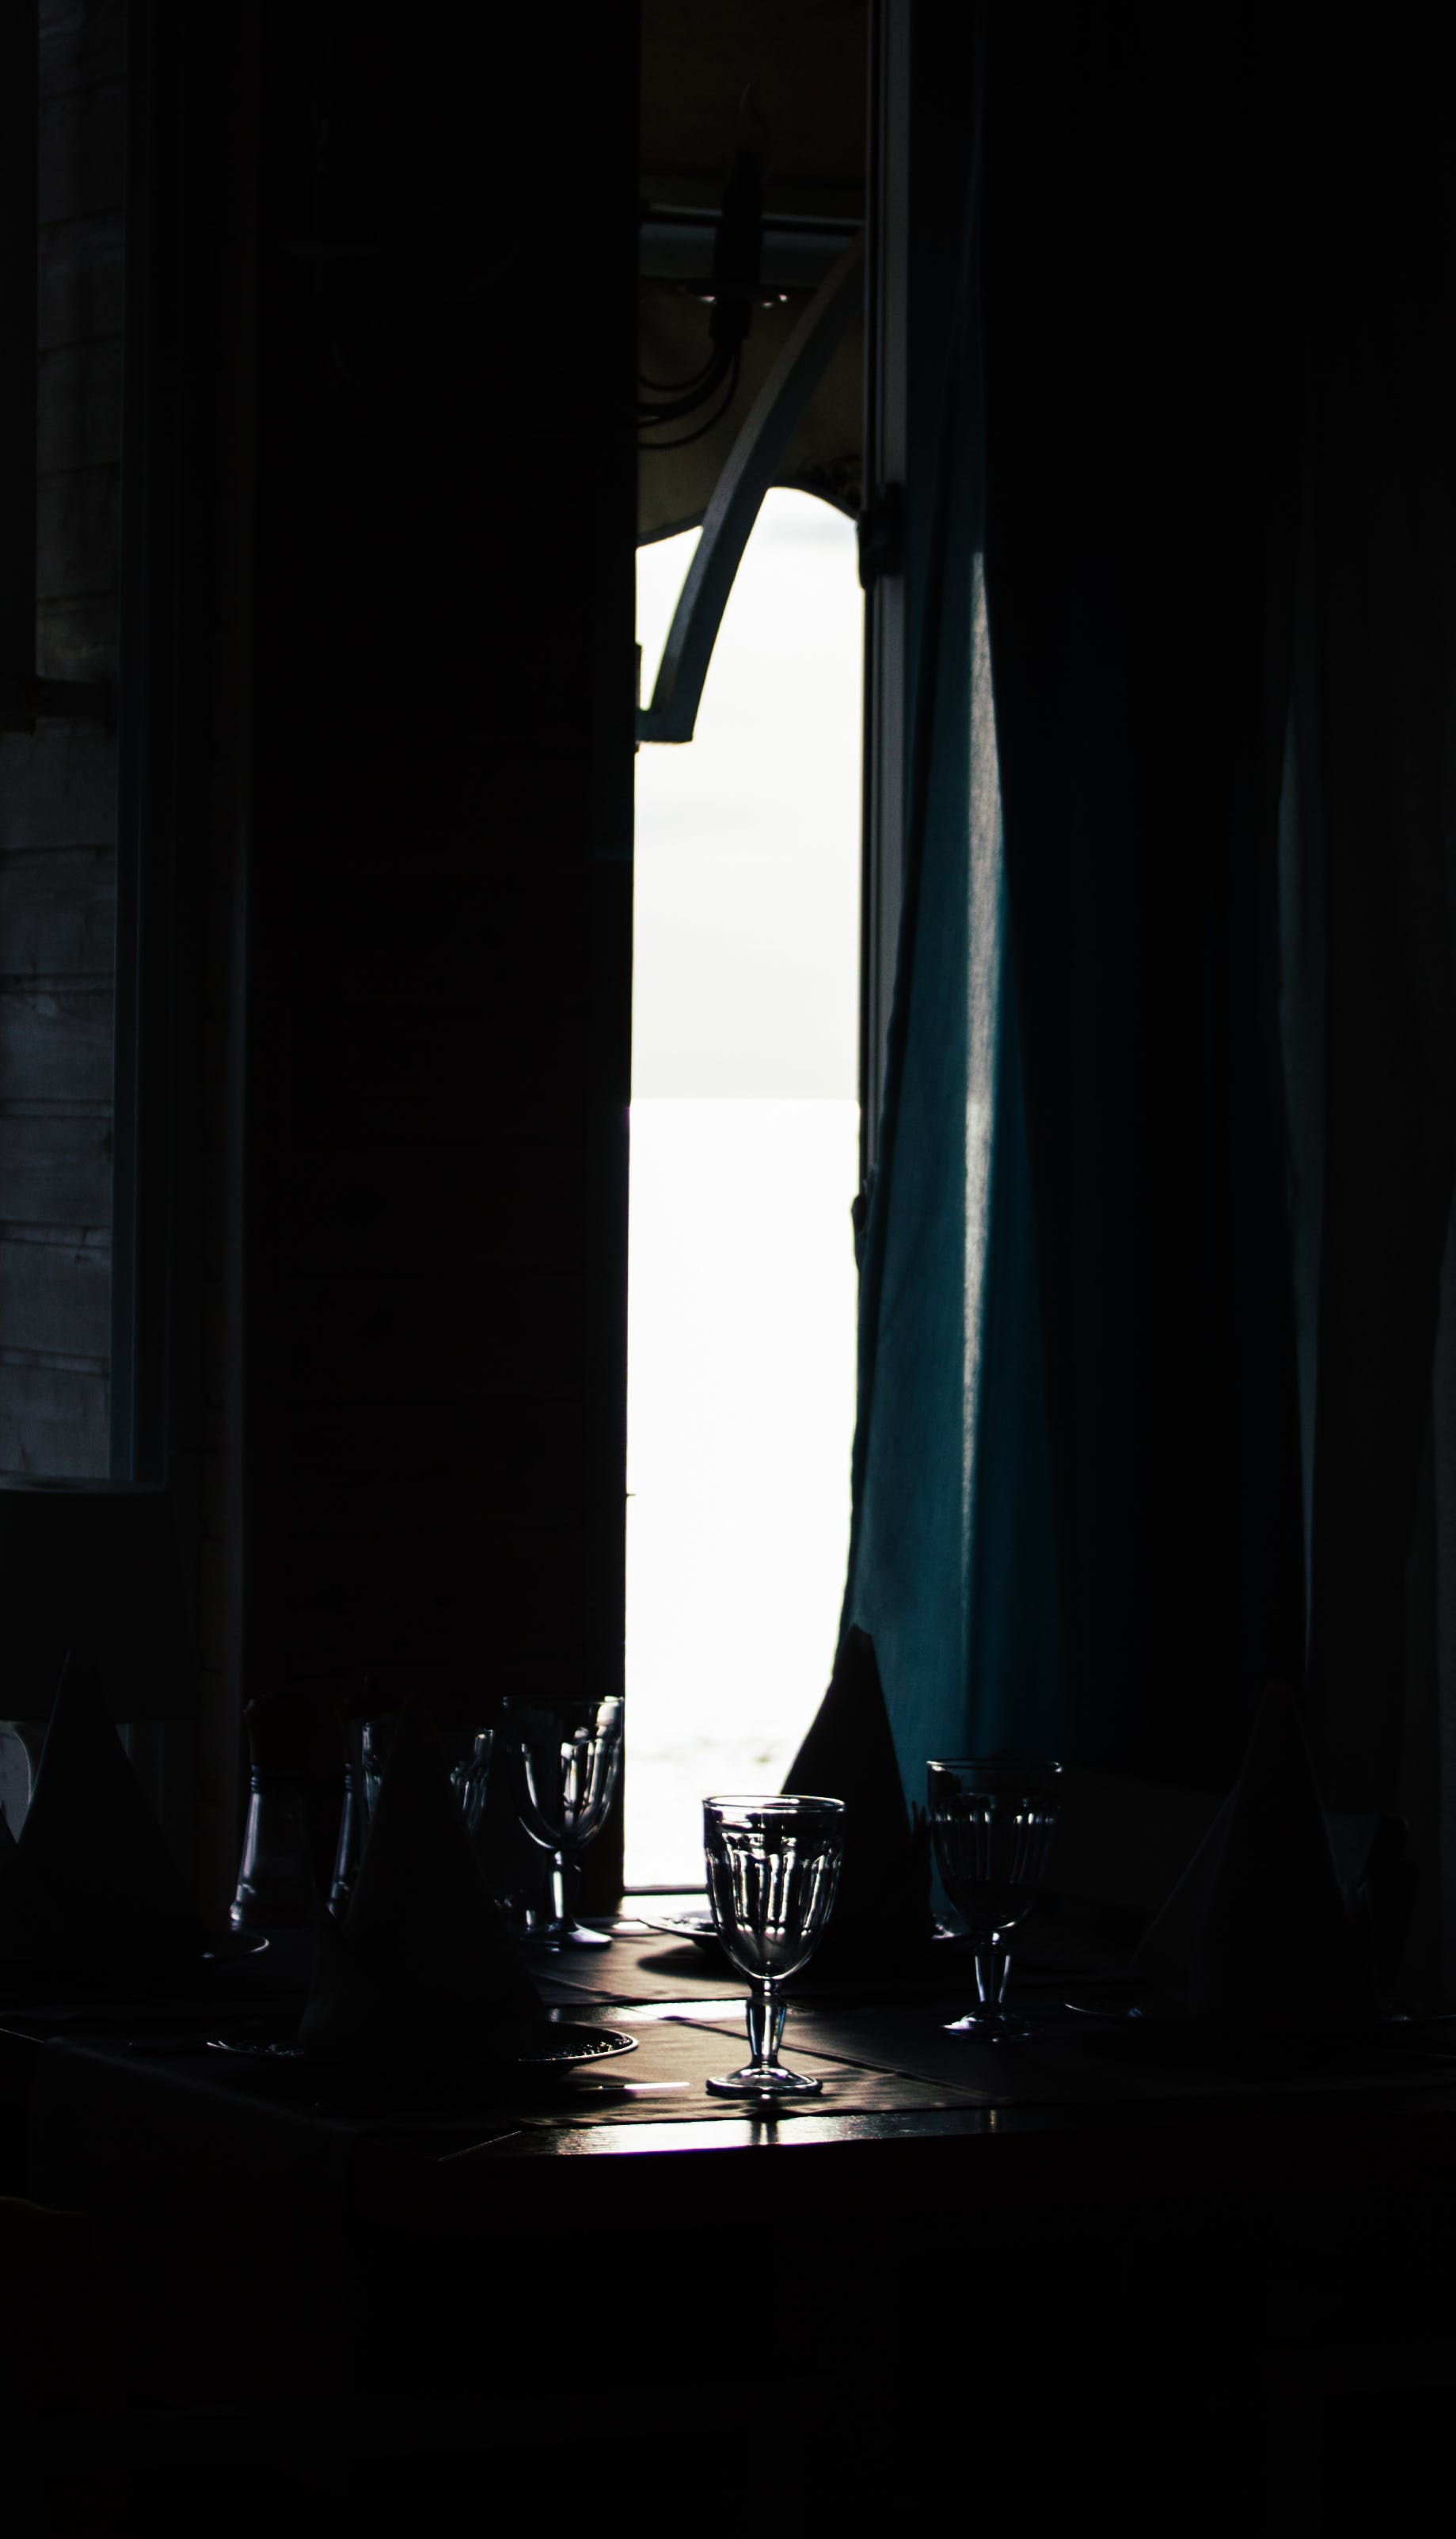 Free stock photo of light, dark, silhouette, table